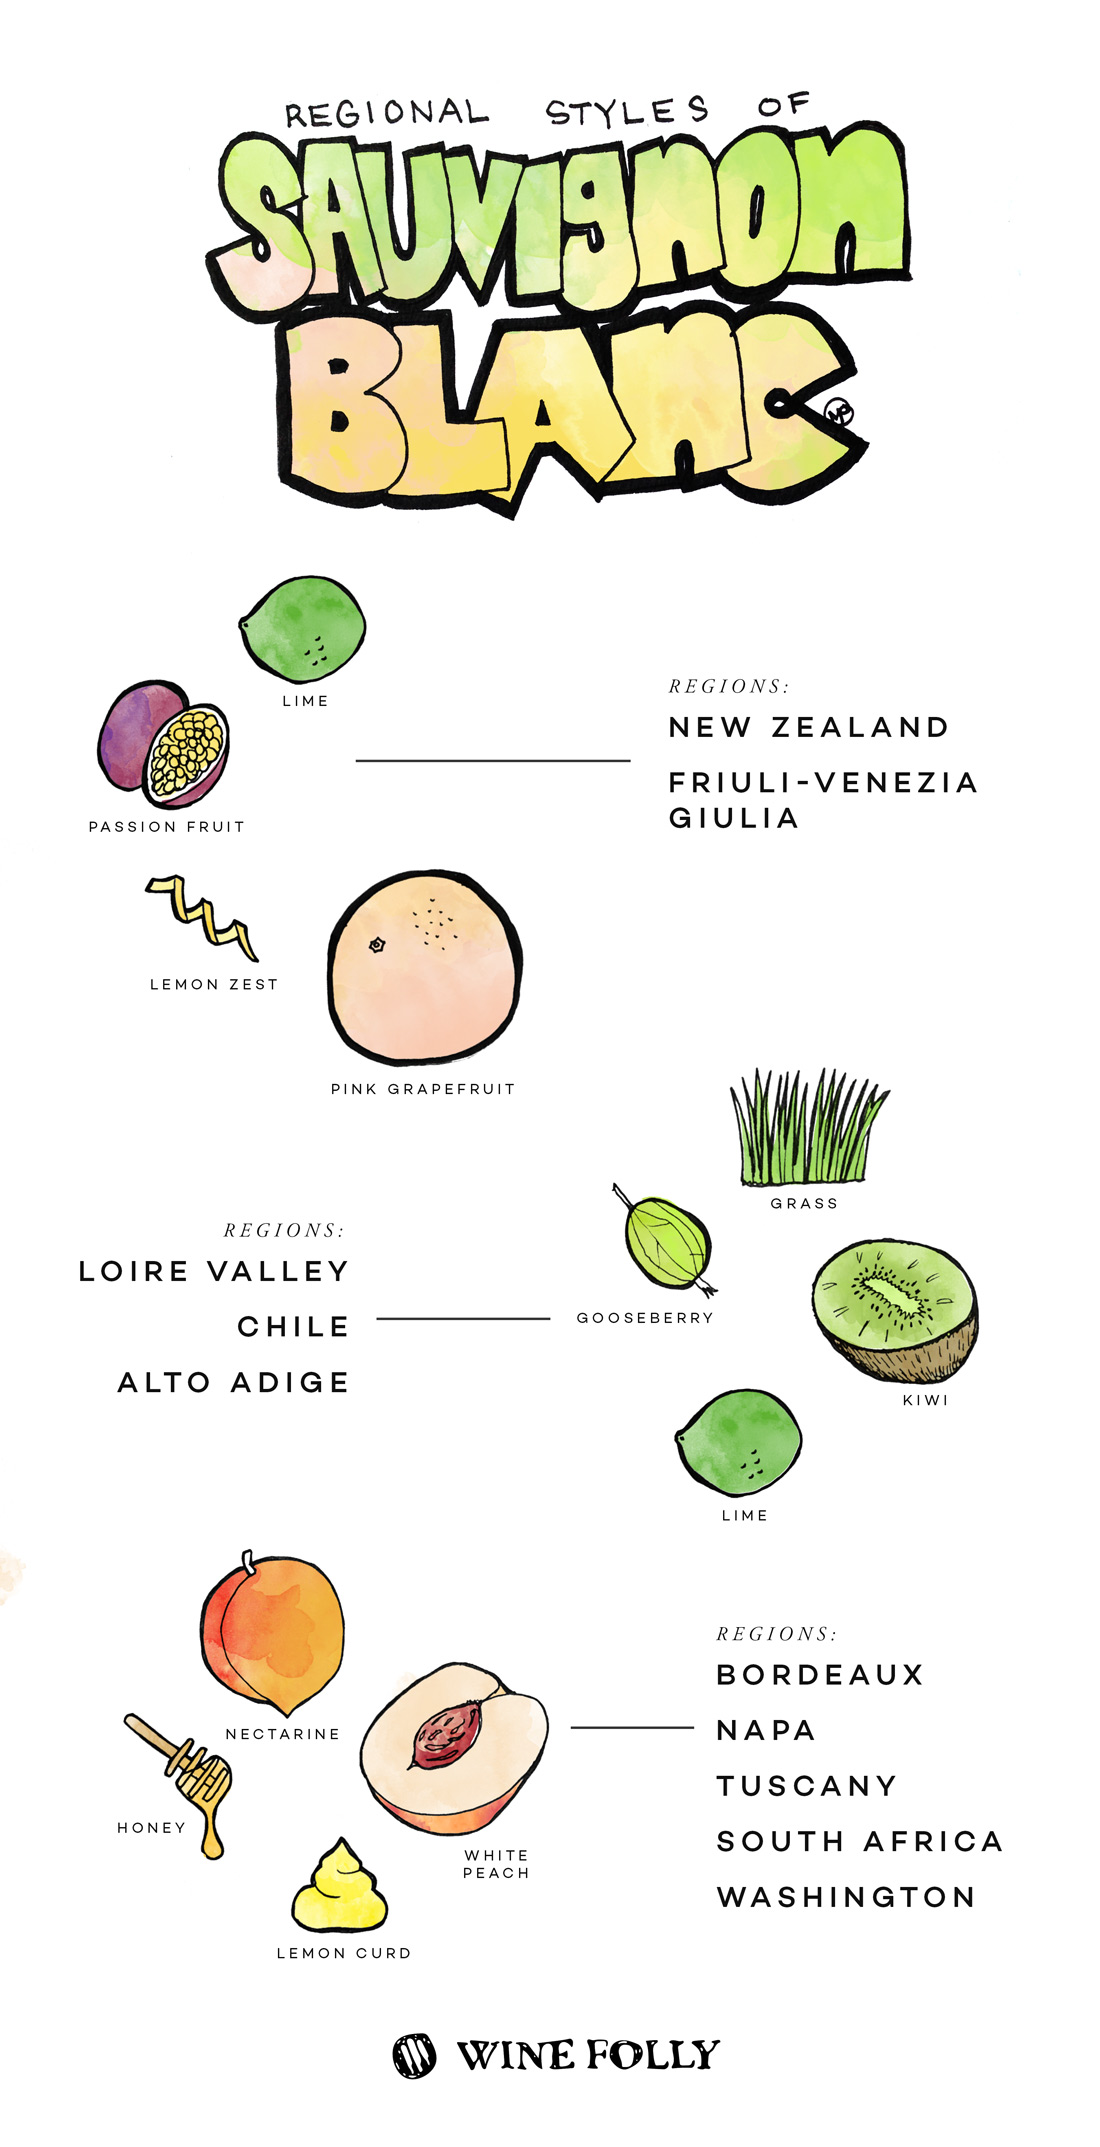 Regional Styles of Sauvignon Blanc by Wine Folly